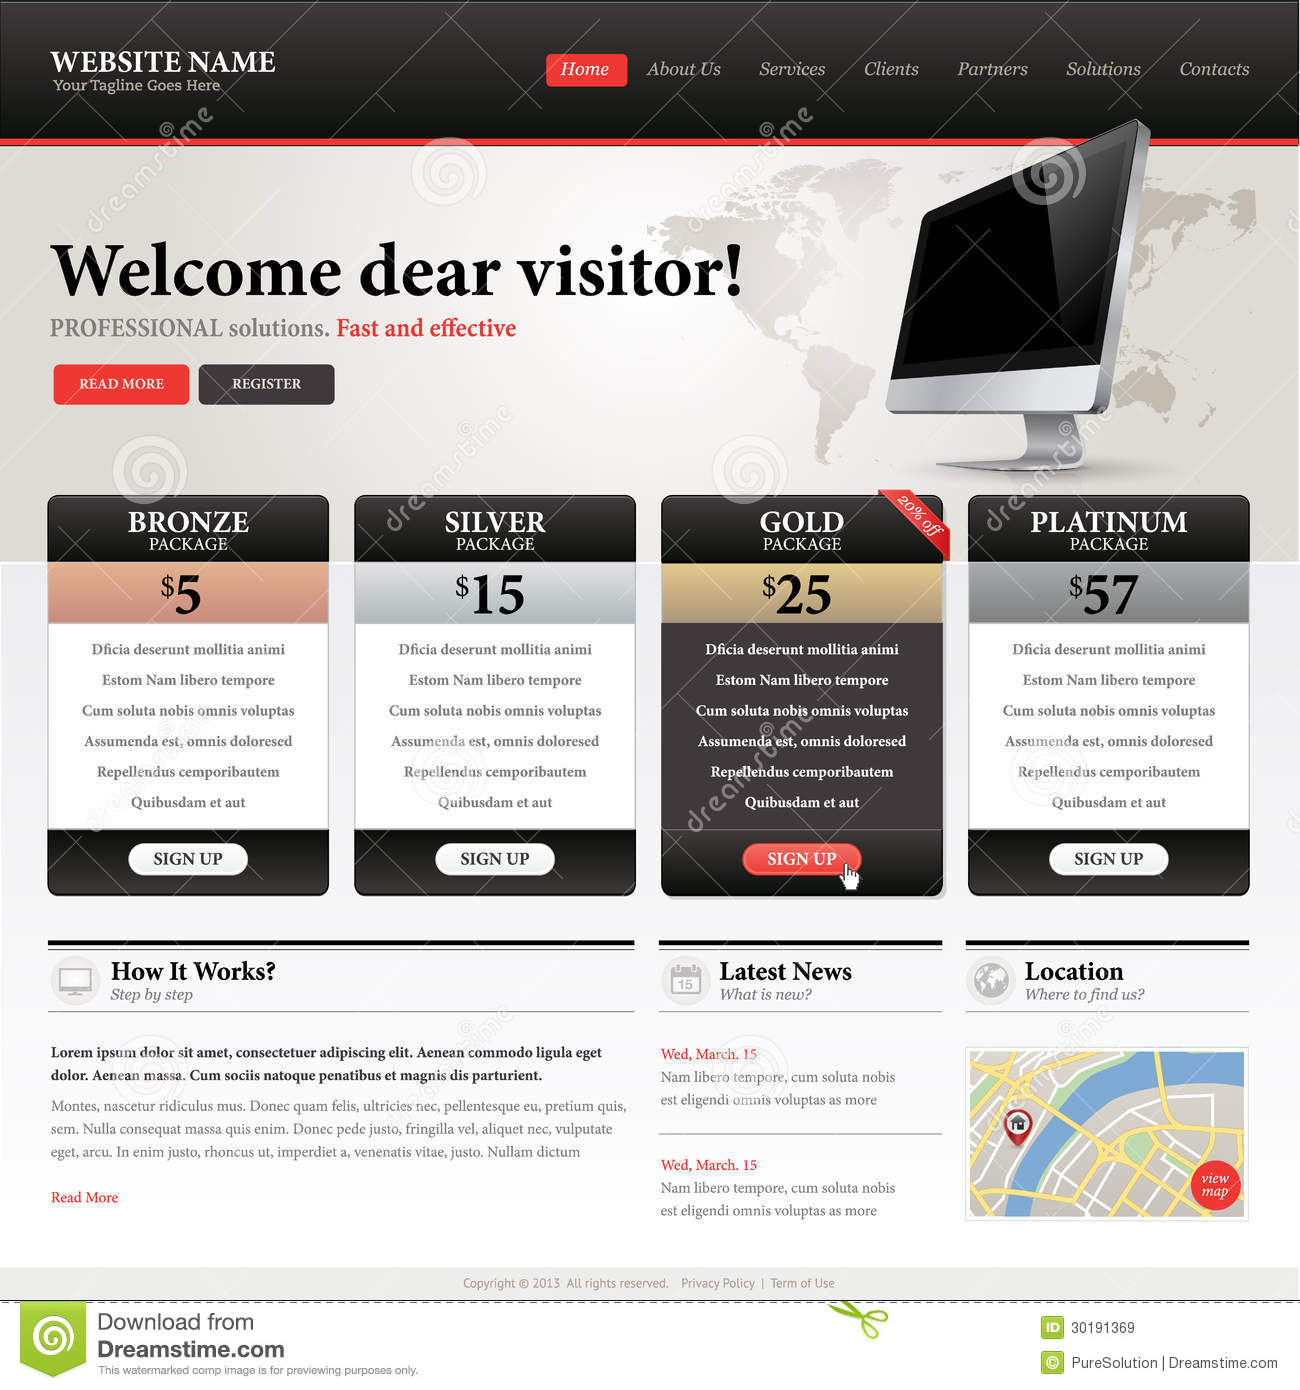 Website design software best free